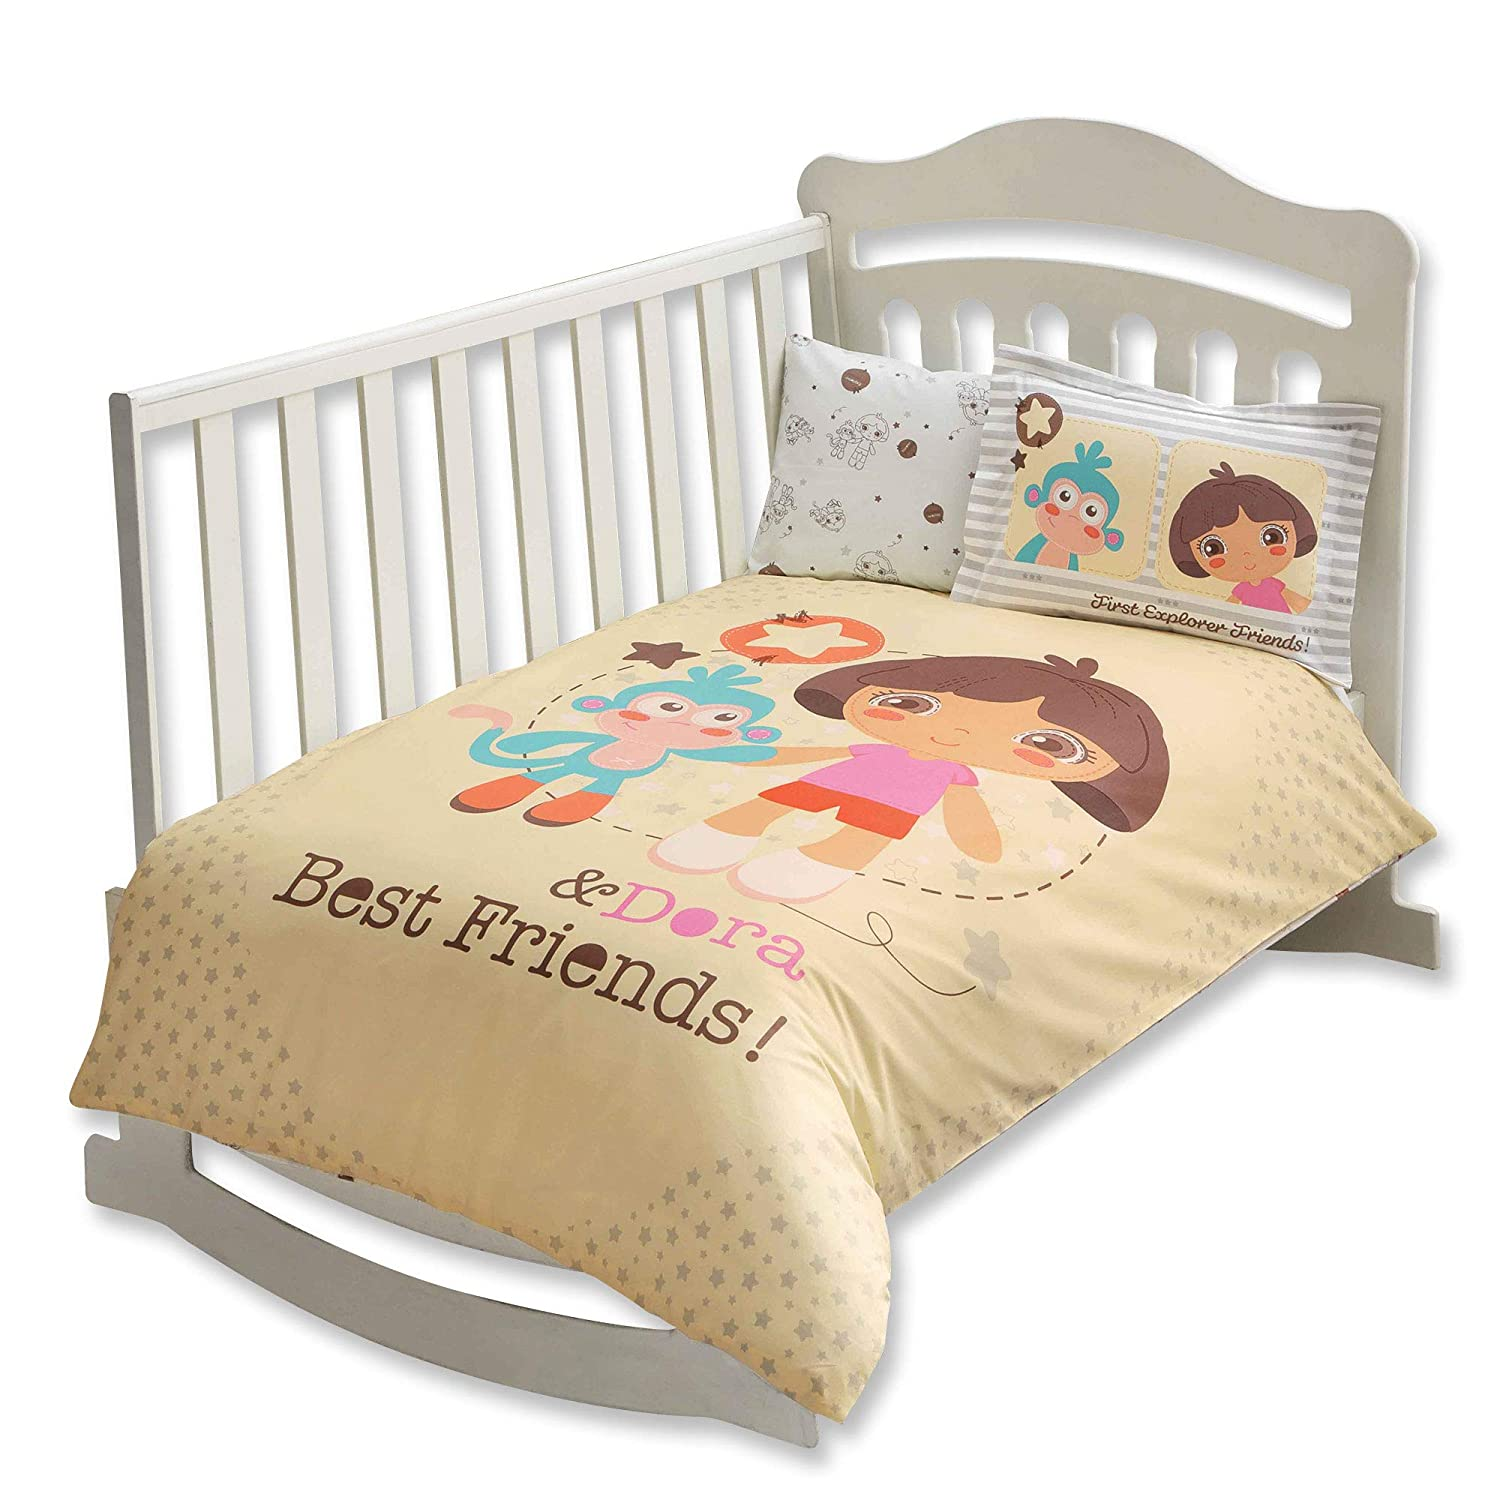 100% Organic Cotton Soft and Healthy Baby Crib Bed Duvet Cover Set 4 Pieces, Dora Best Friends Baby Bedding Set TAC